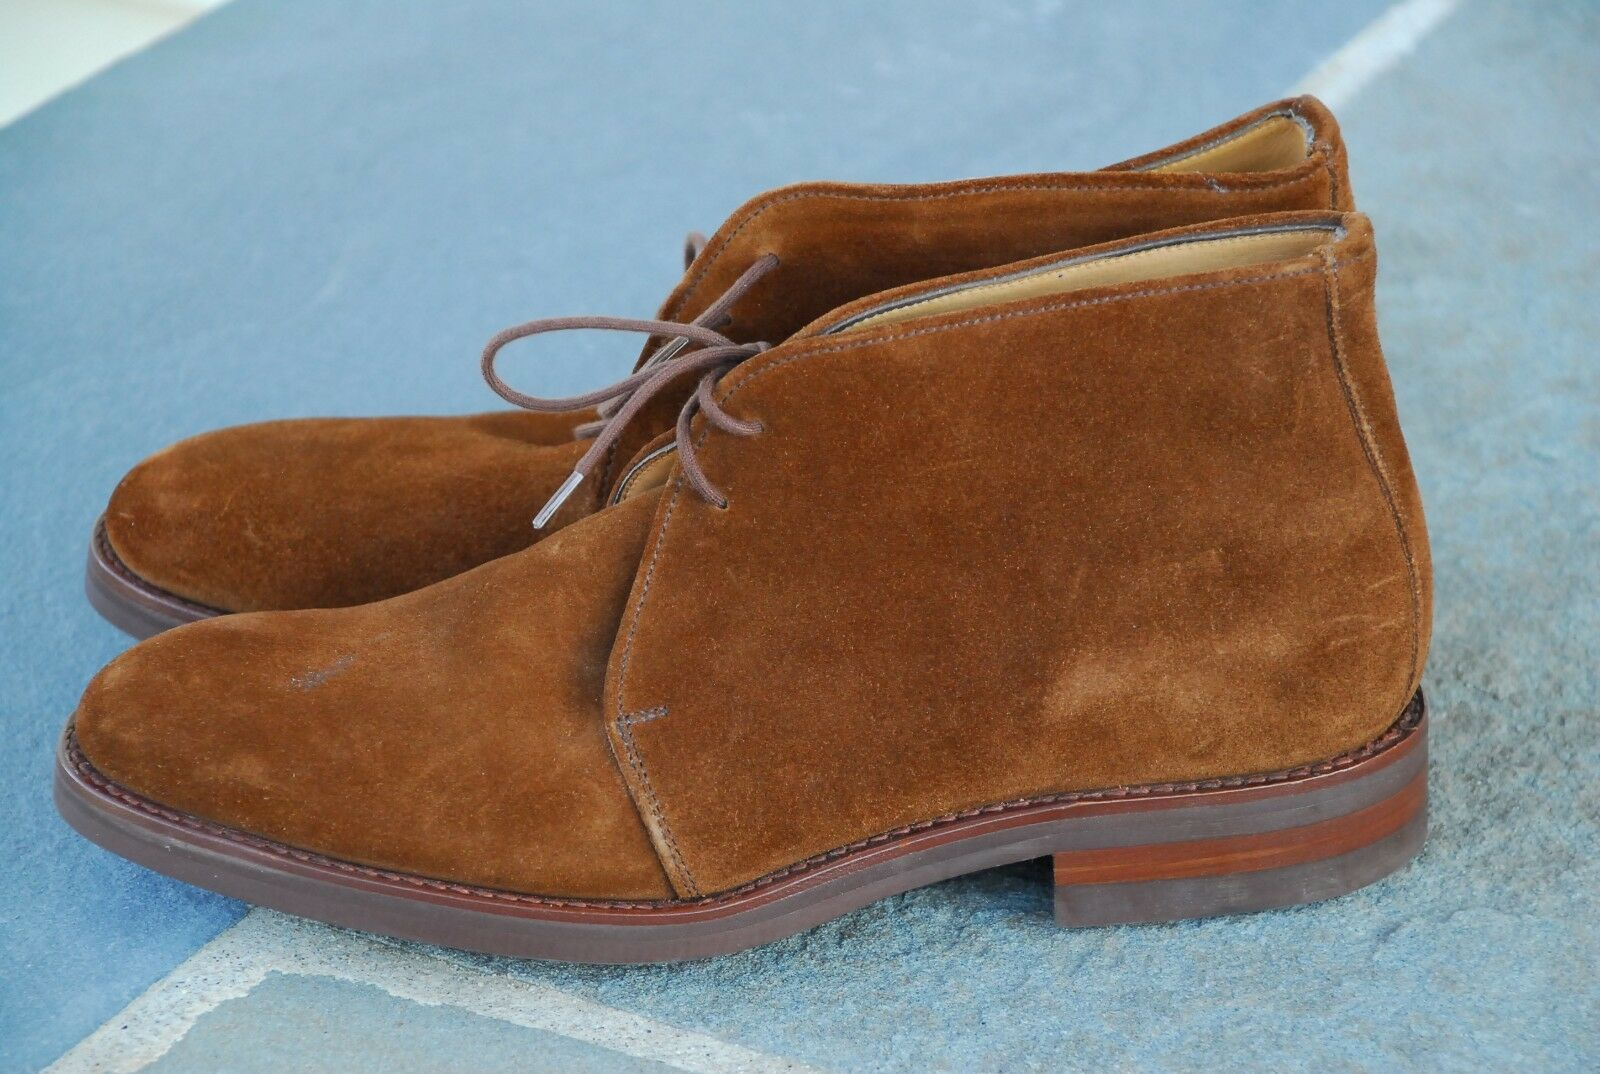 NEW  8D ALFRED Ssilver FOR BROOKS BredHERS PEAL SUEDE CHUKKA BOOTS ALDEN BAGS